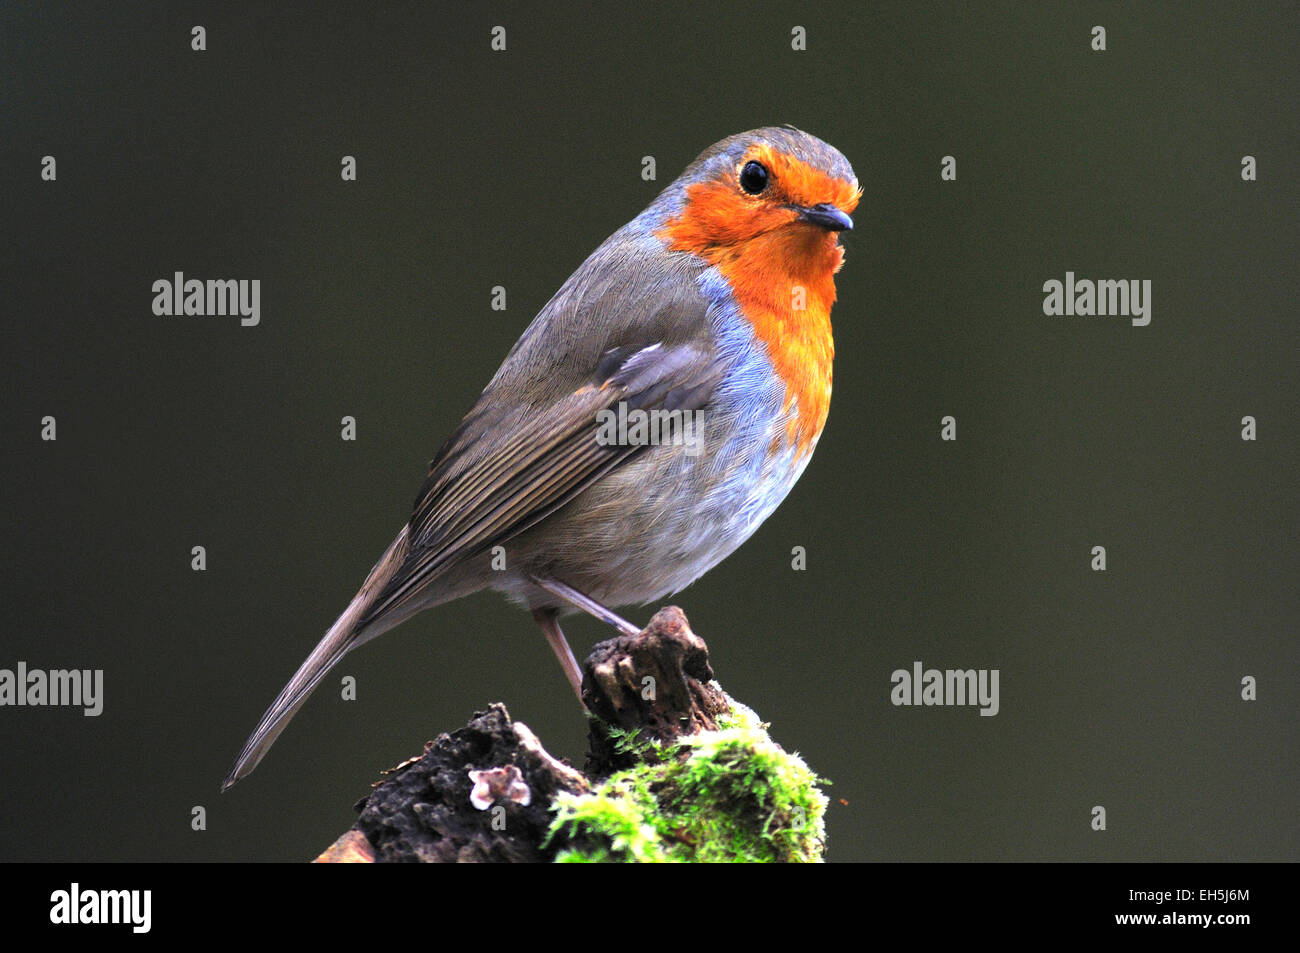 A cheeky looking robin on a mossy log UK Stock Photo